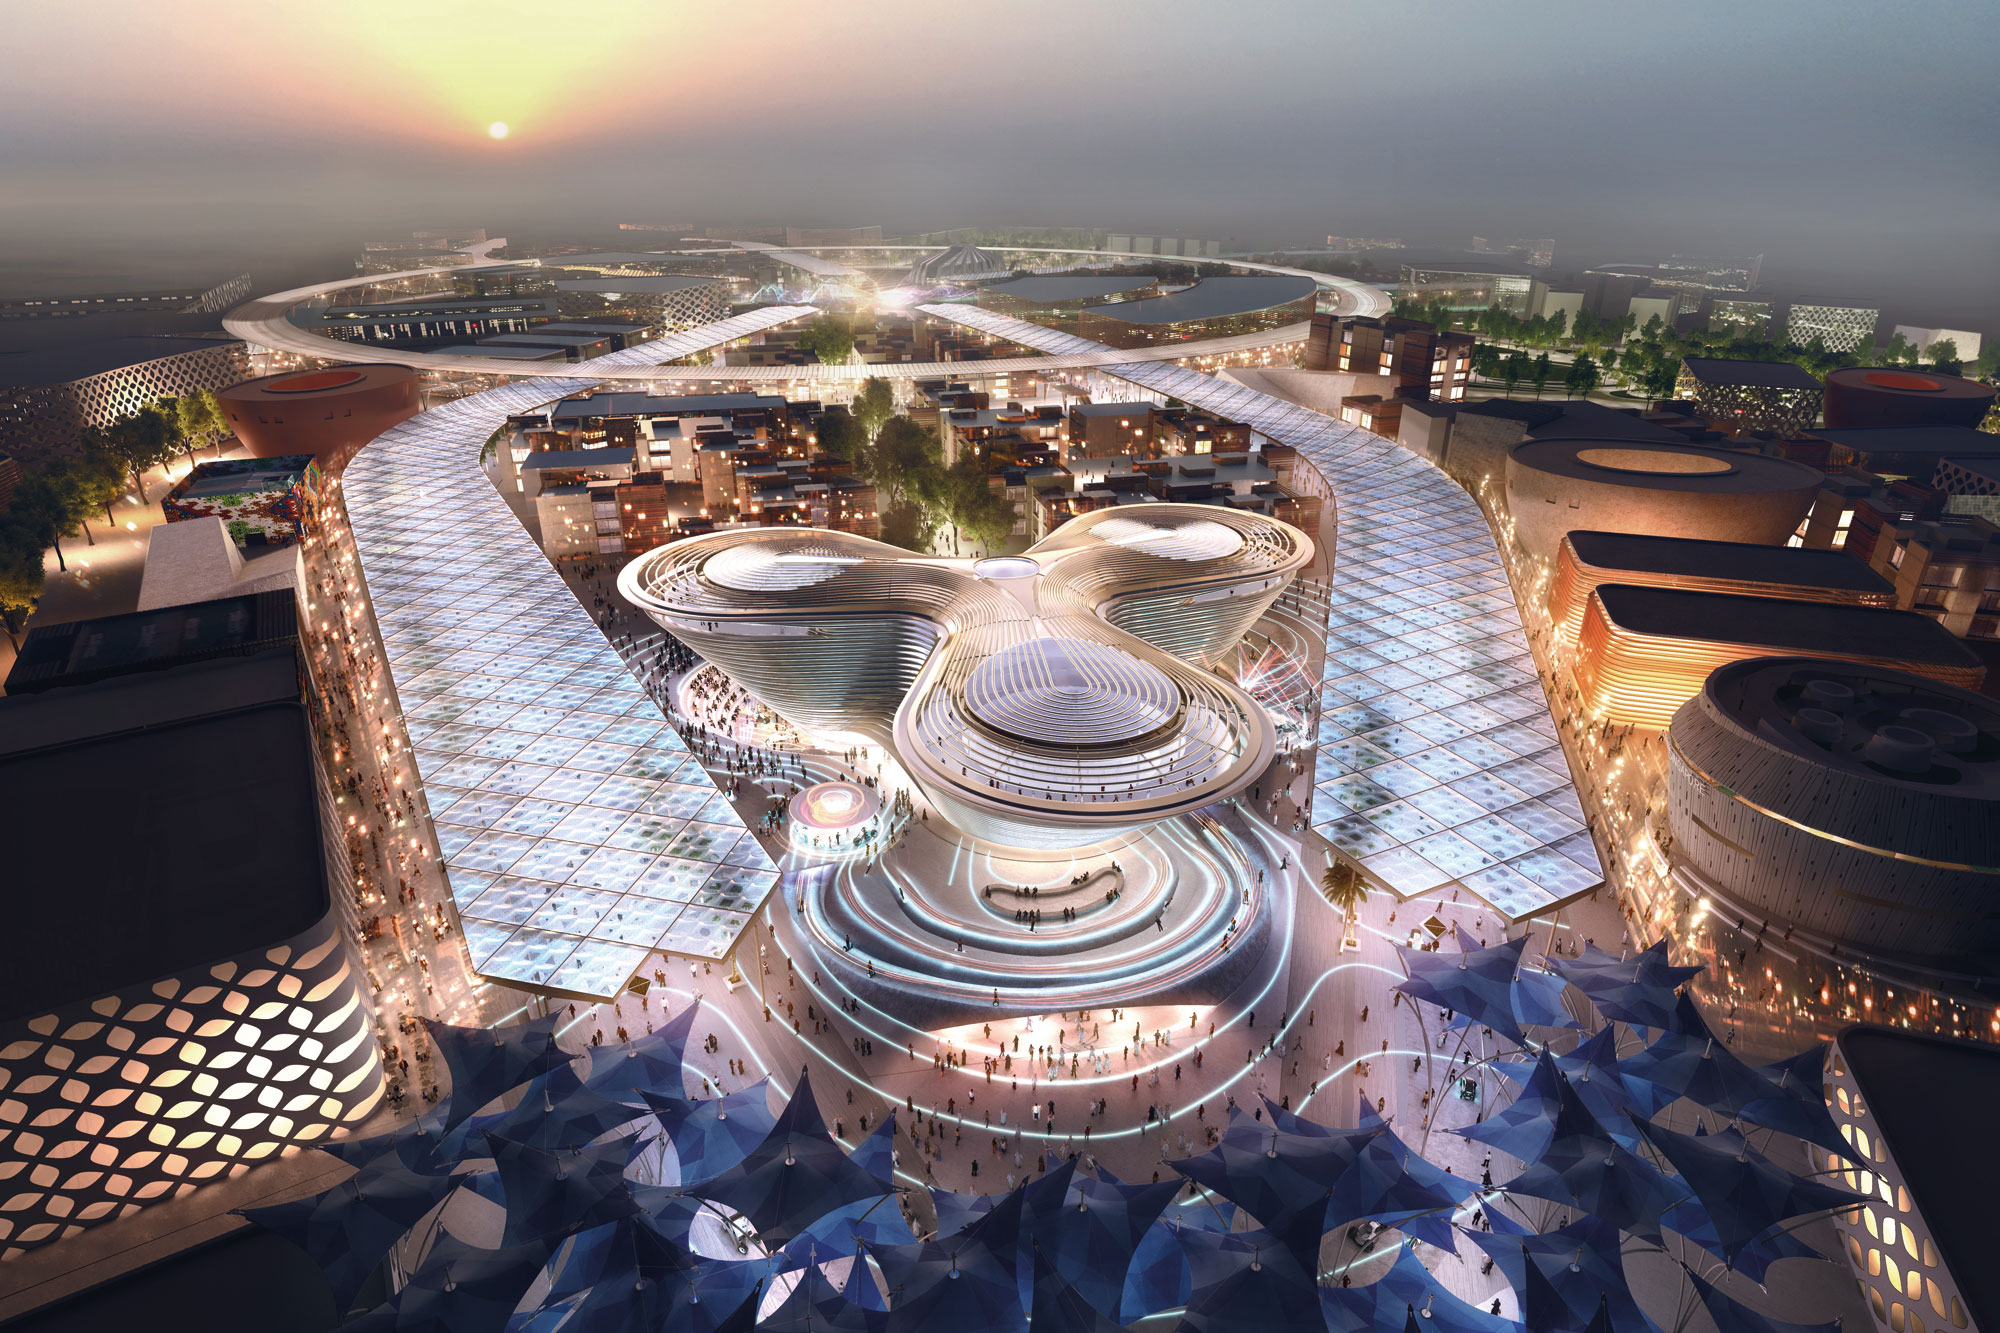 Are you ready for Expo 2020?